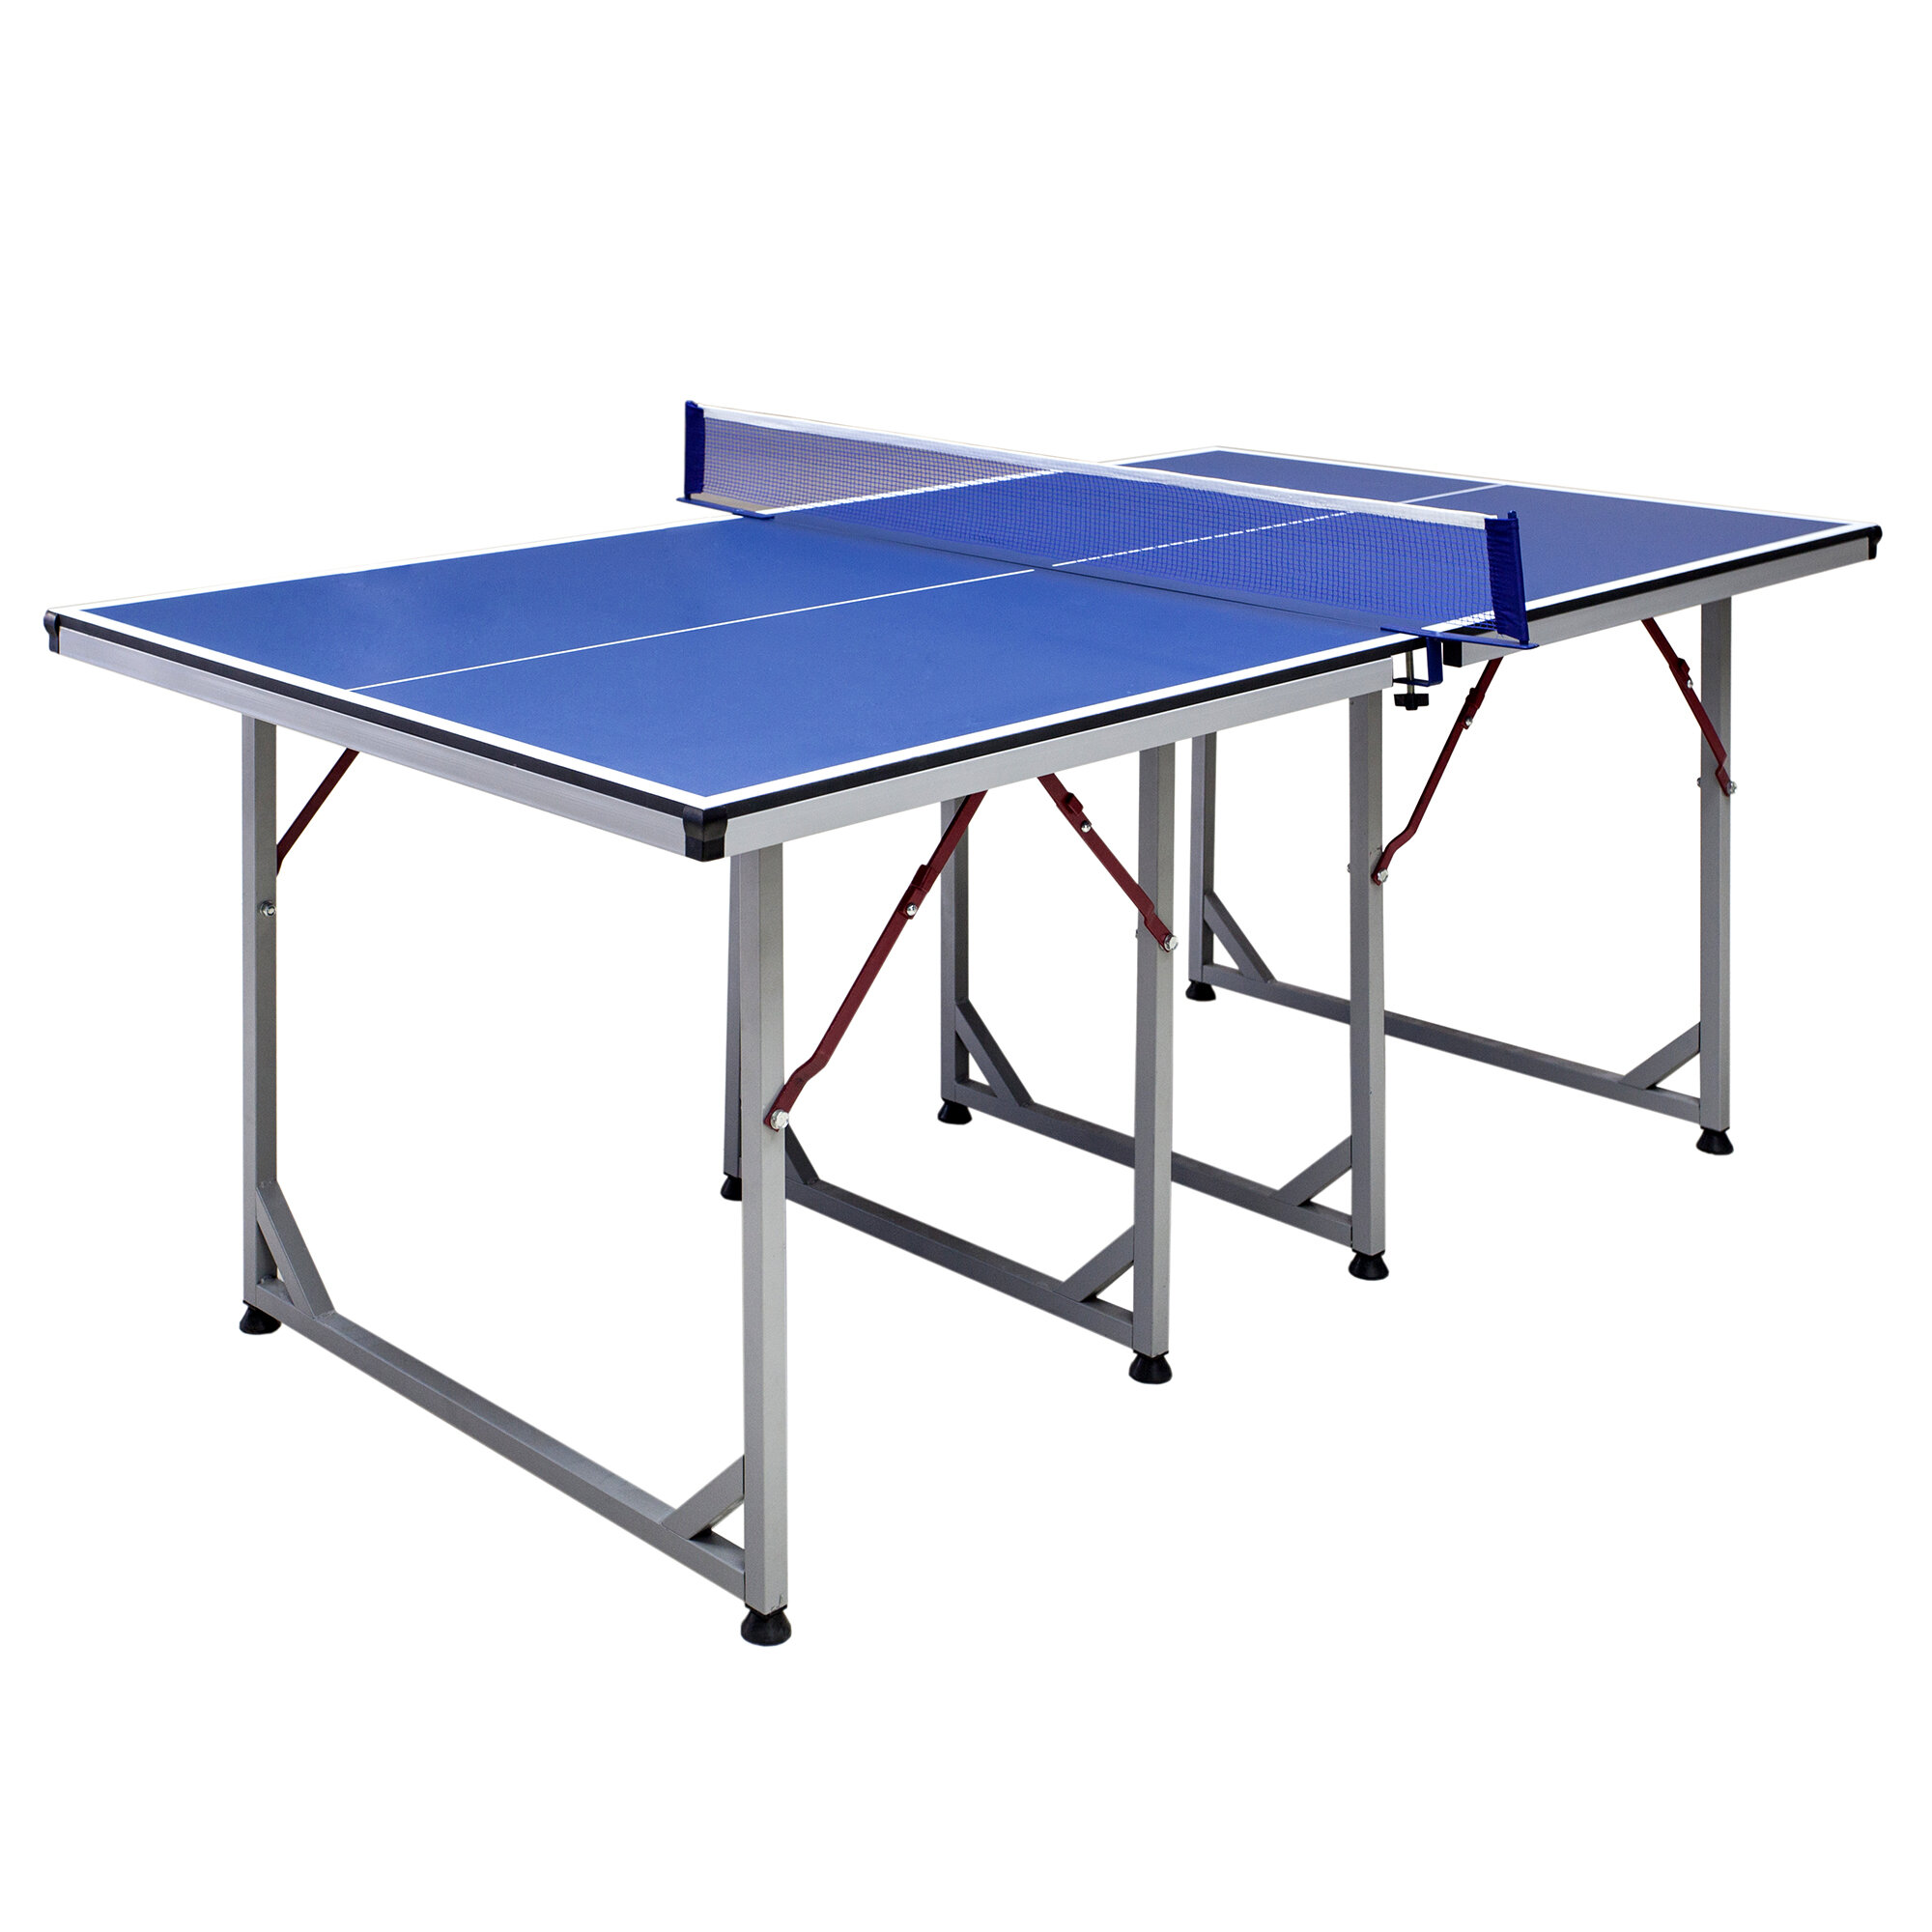 Hathaway Games Reflex Foldable Indoor Table Tennis Table With Paddles And Balls Reviews Wayfair